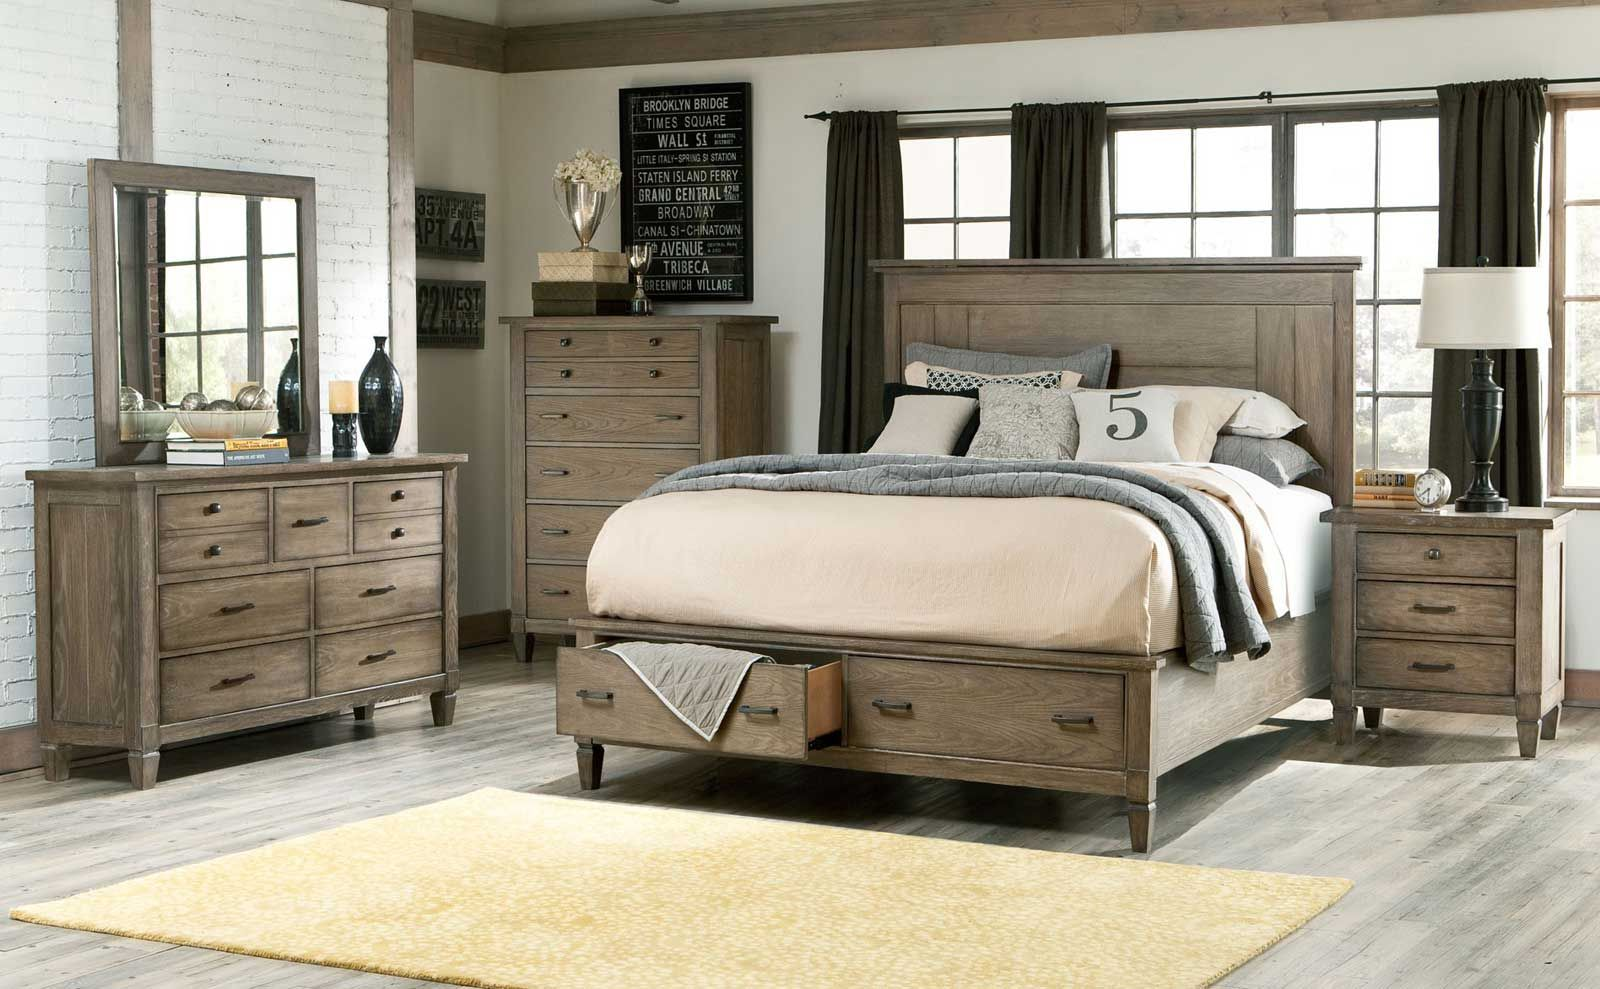 Rustic Bedroom Furniture Sets Ideas